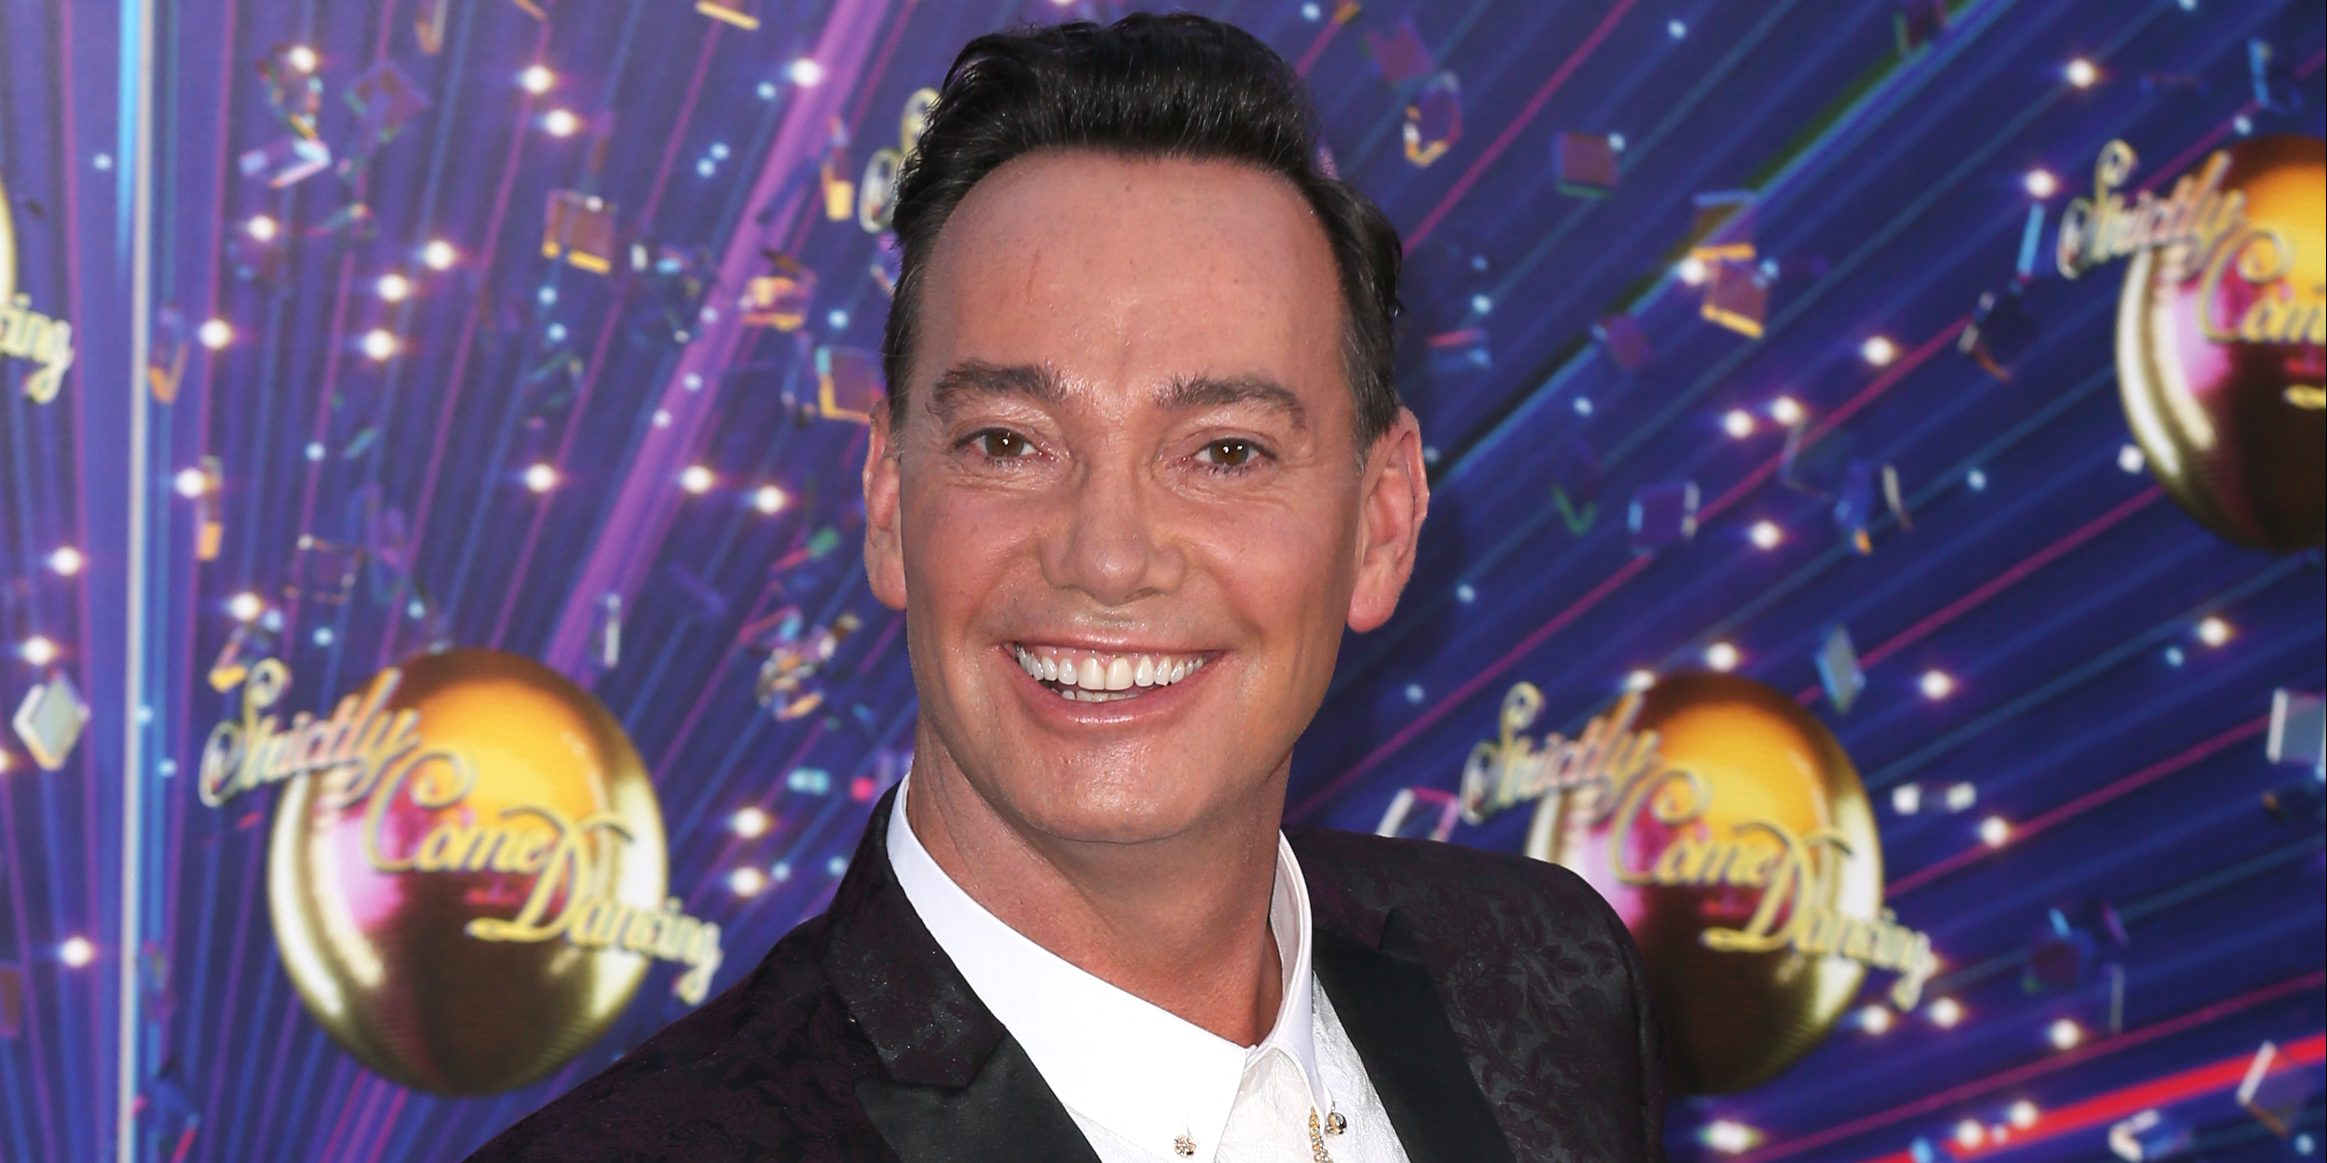 Strictly Come Dancing: Craig Revel Horwood apologises for Kevin and Stacey joke